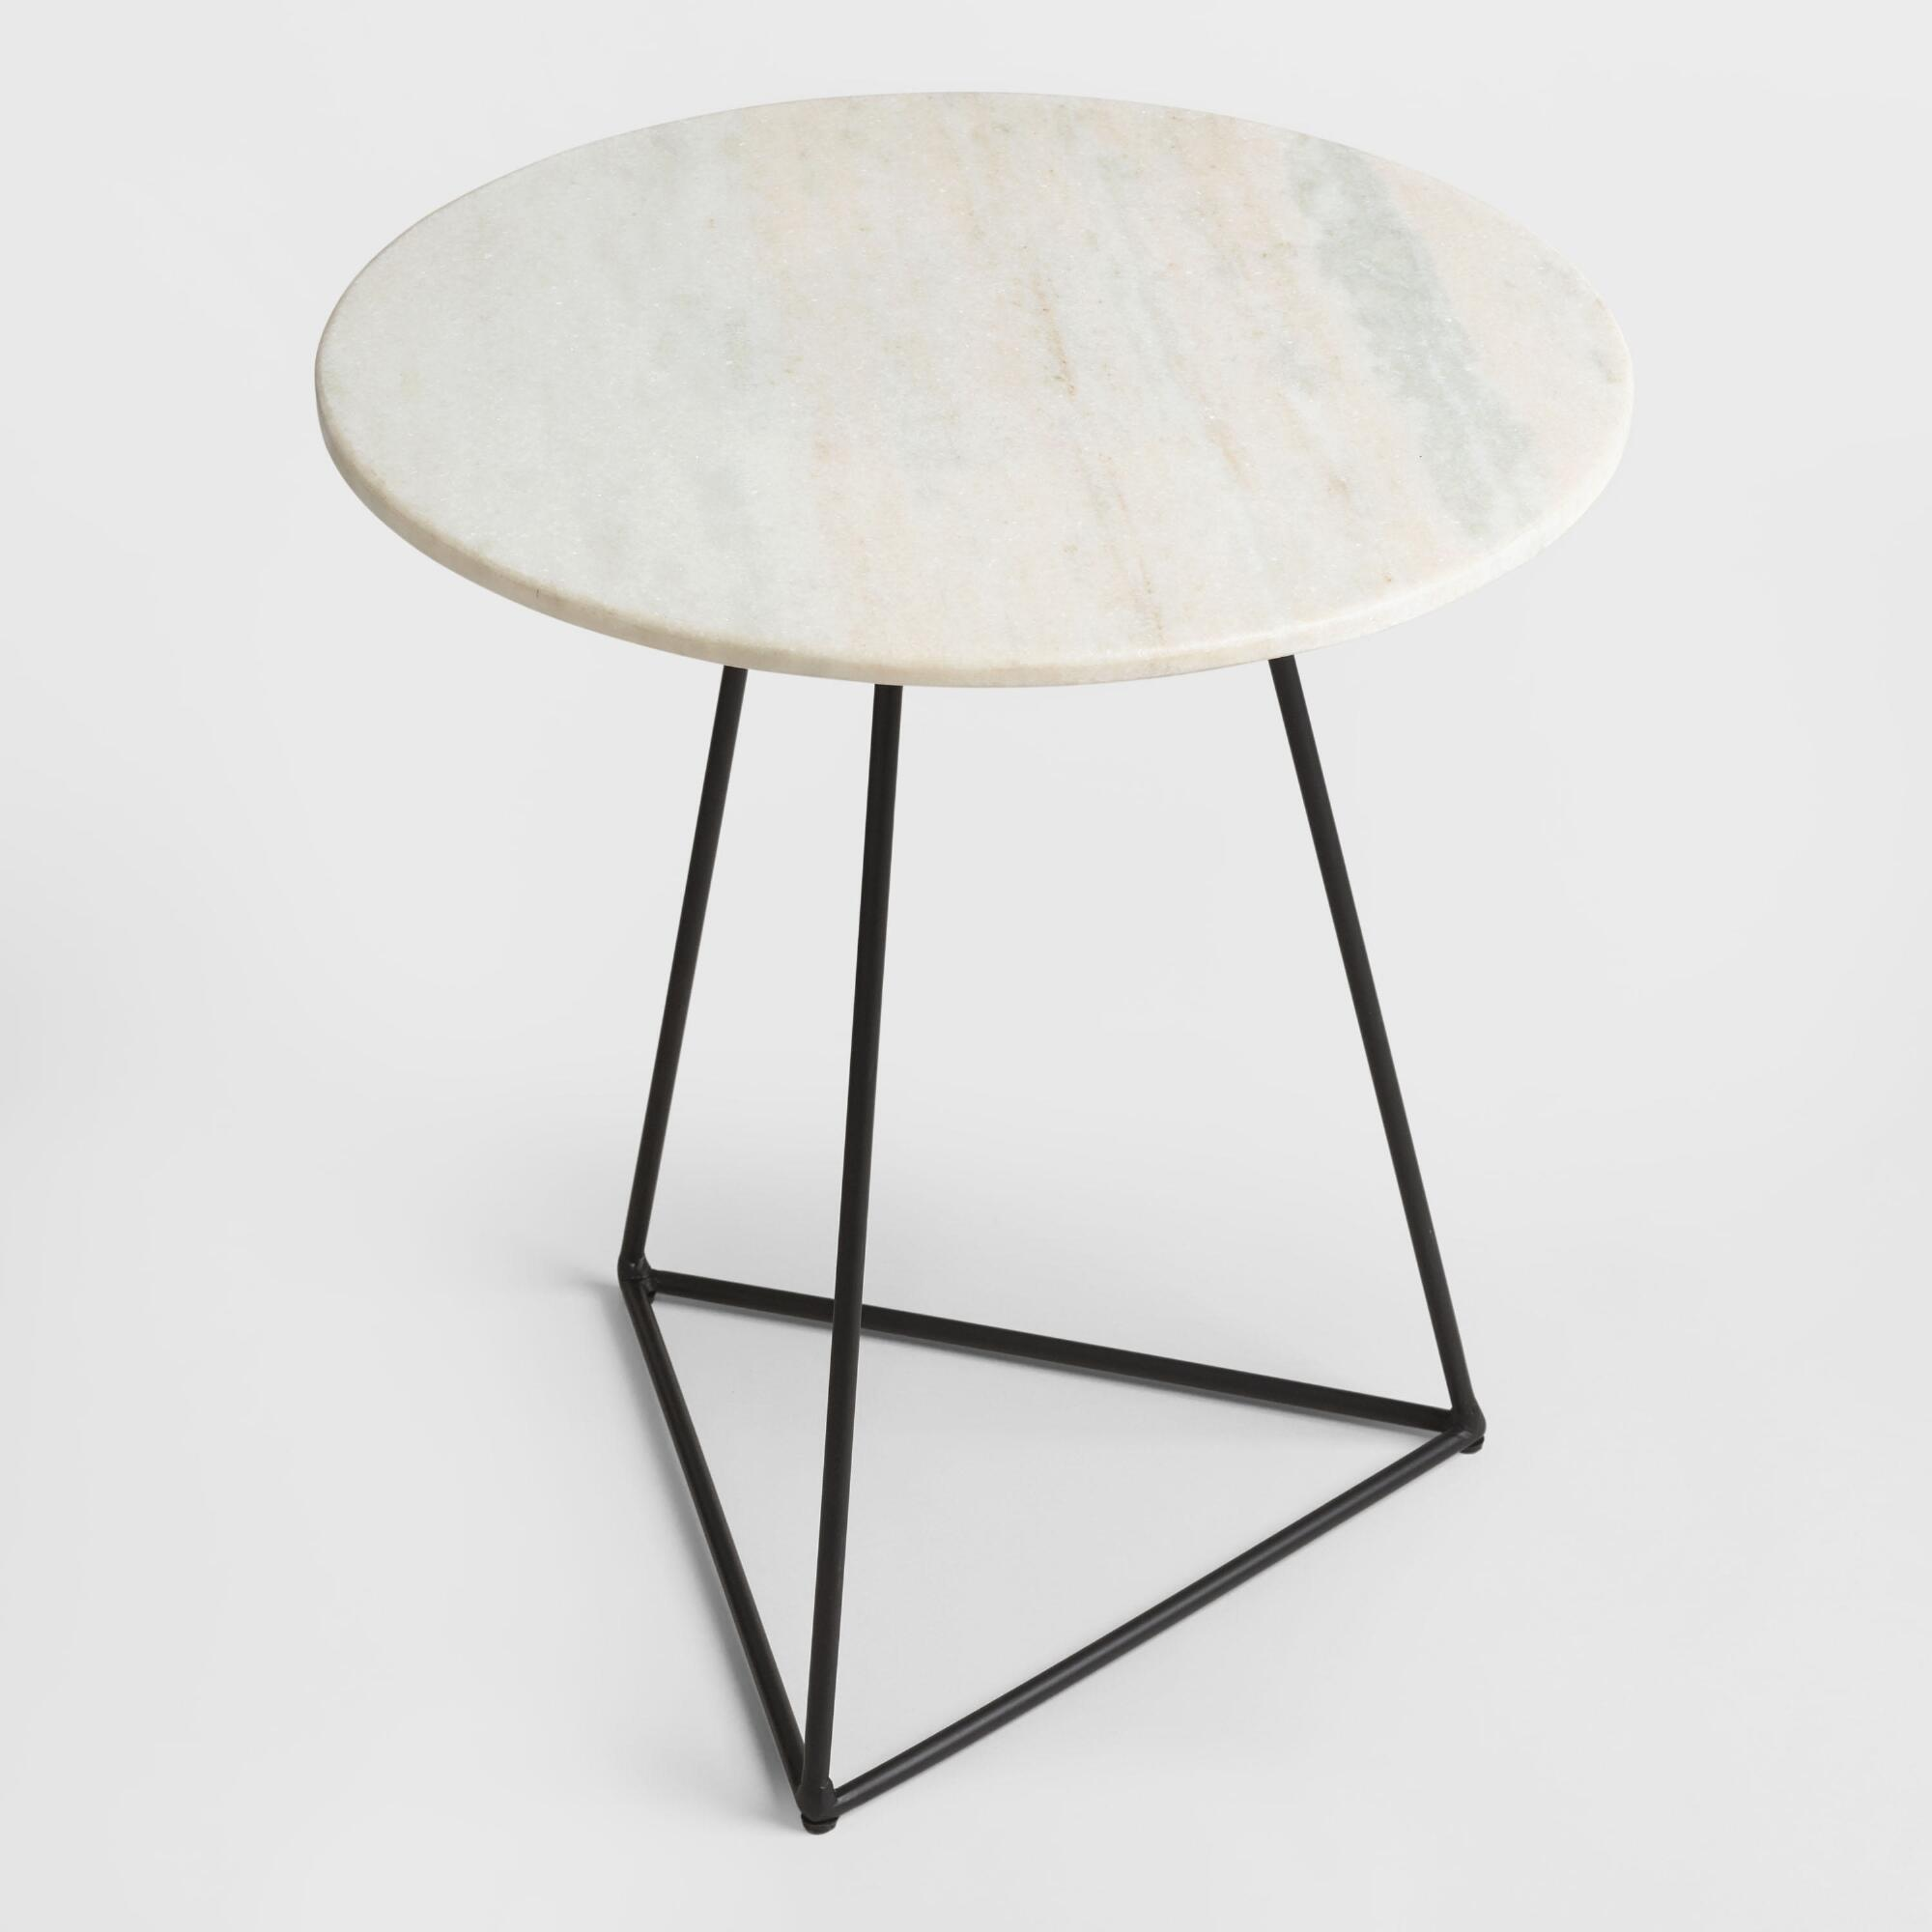 small space coffee side tables world market iipsrv fcgi accent under round white marble and metal table sunbrella umbrella antique dining chair pads target basket kidney shaped